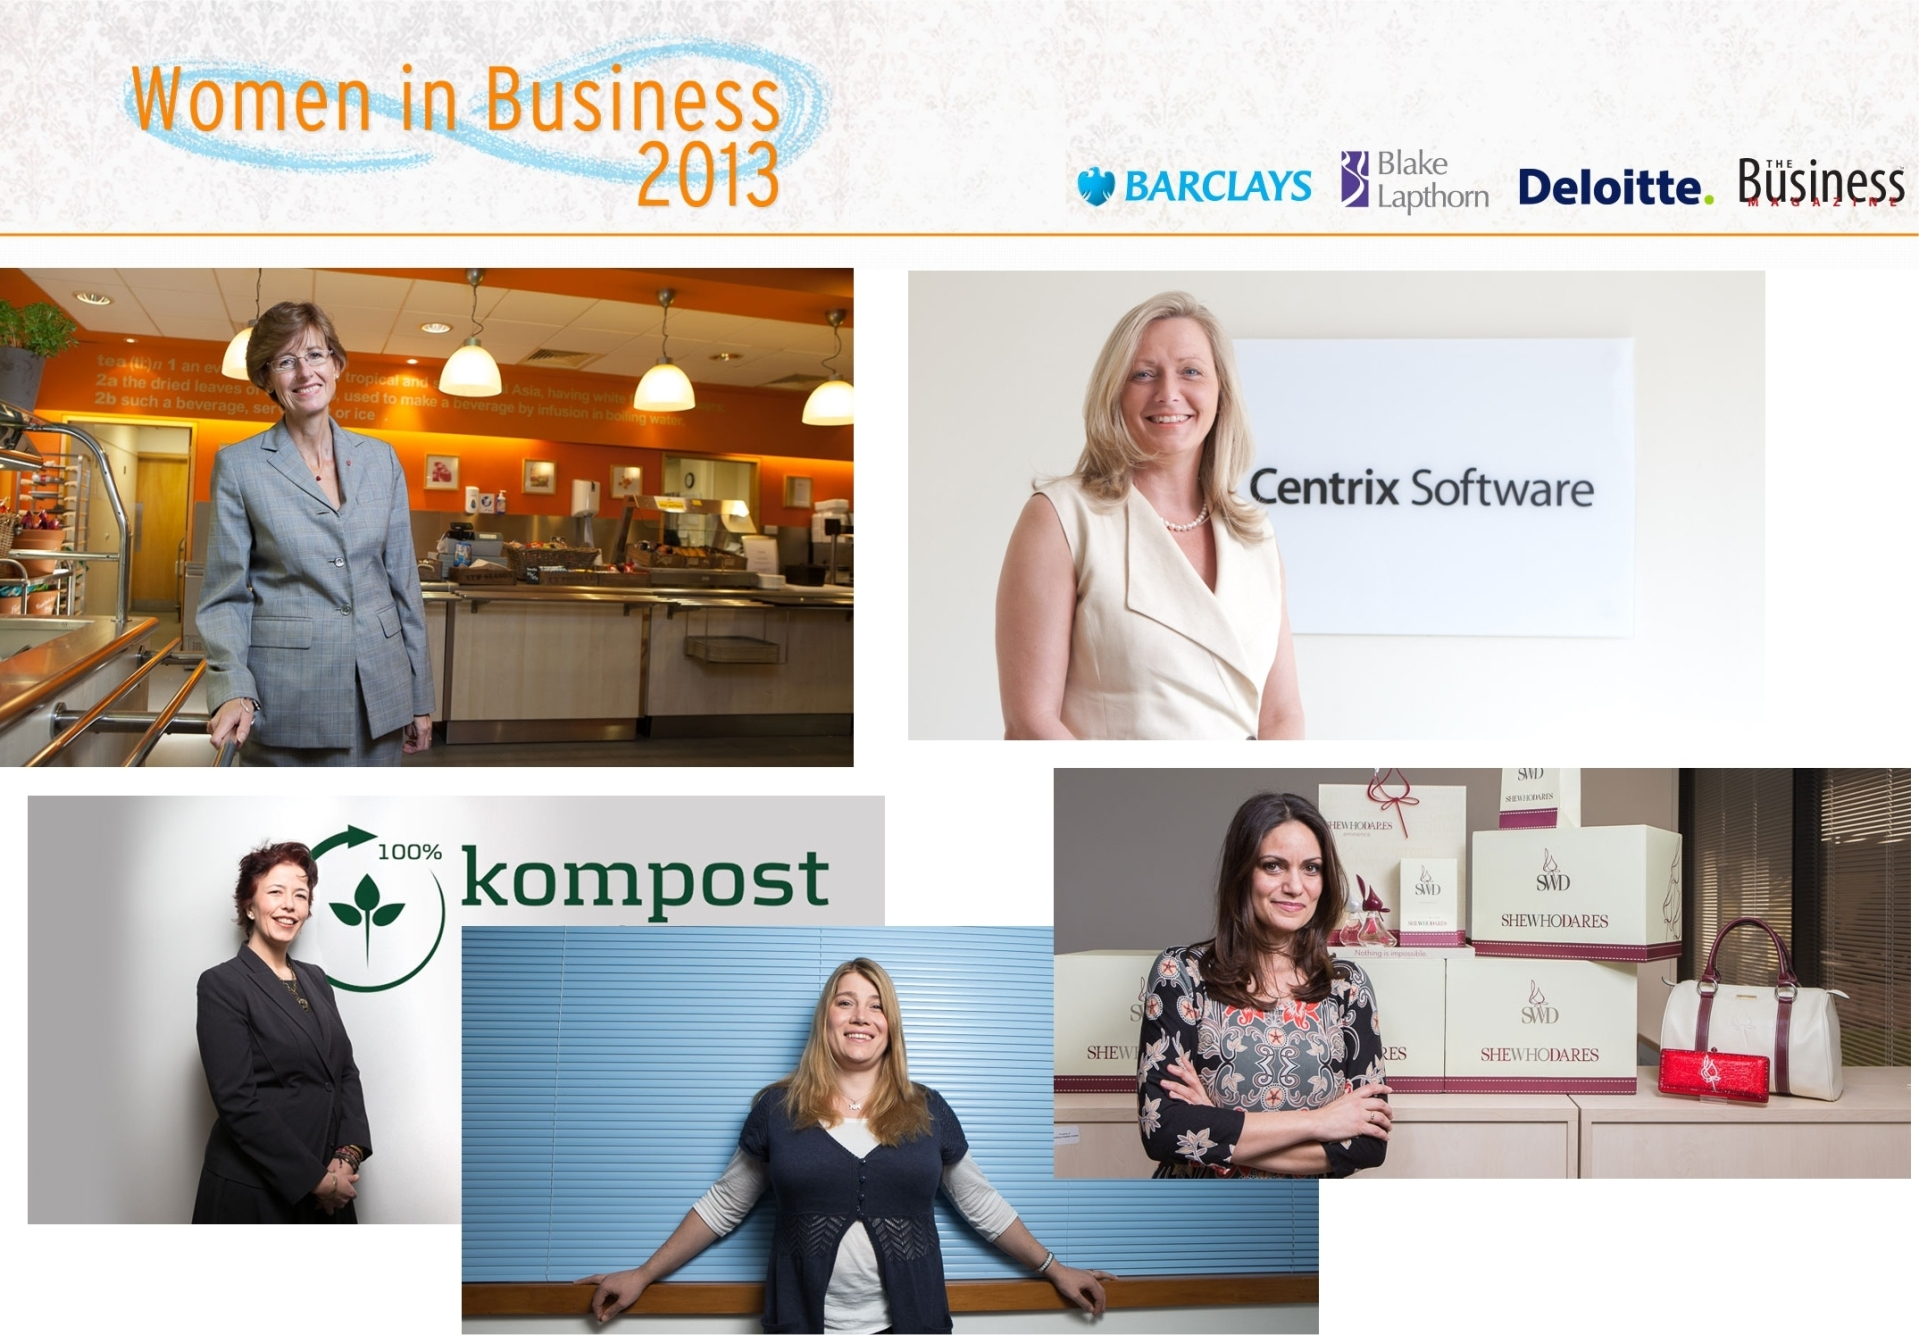 women-in-business-2013